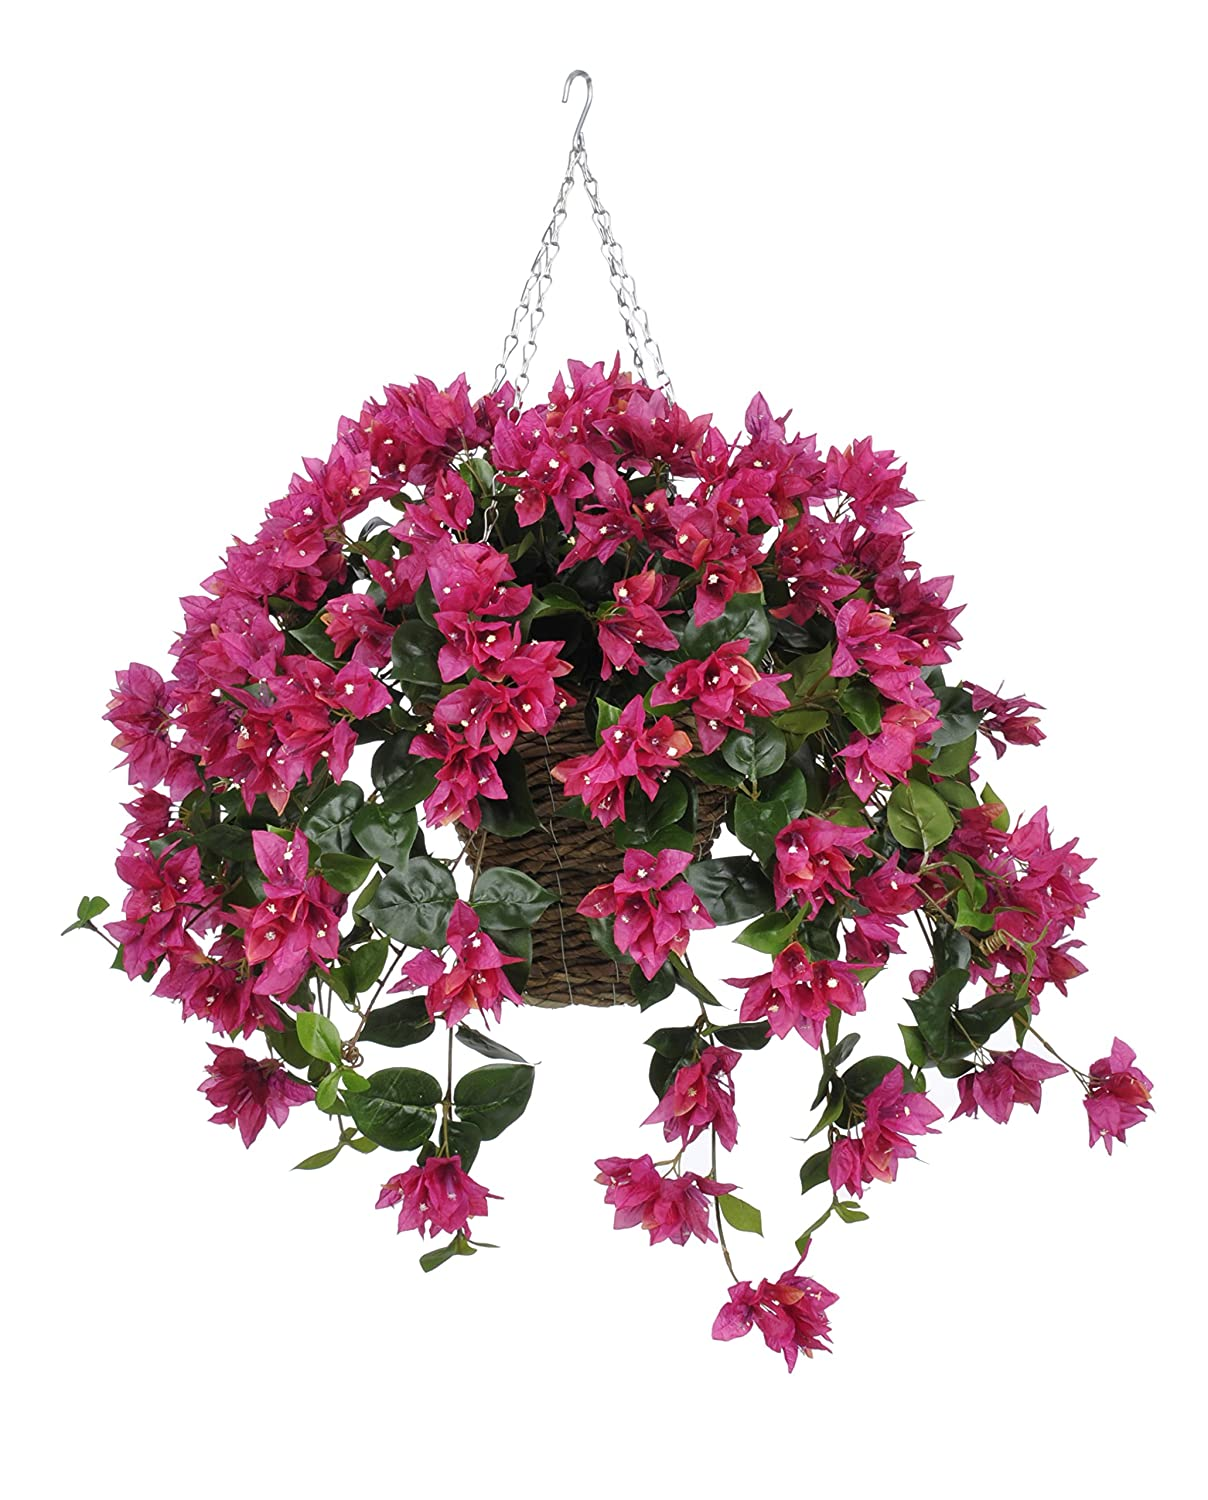 人工Bougainvillea Hanging Plant in Square Basketフラワーカラー: Fuchsia B00WTF3GA0